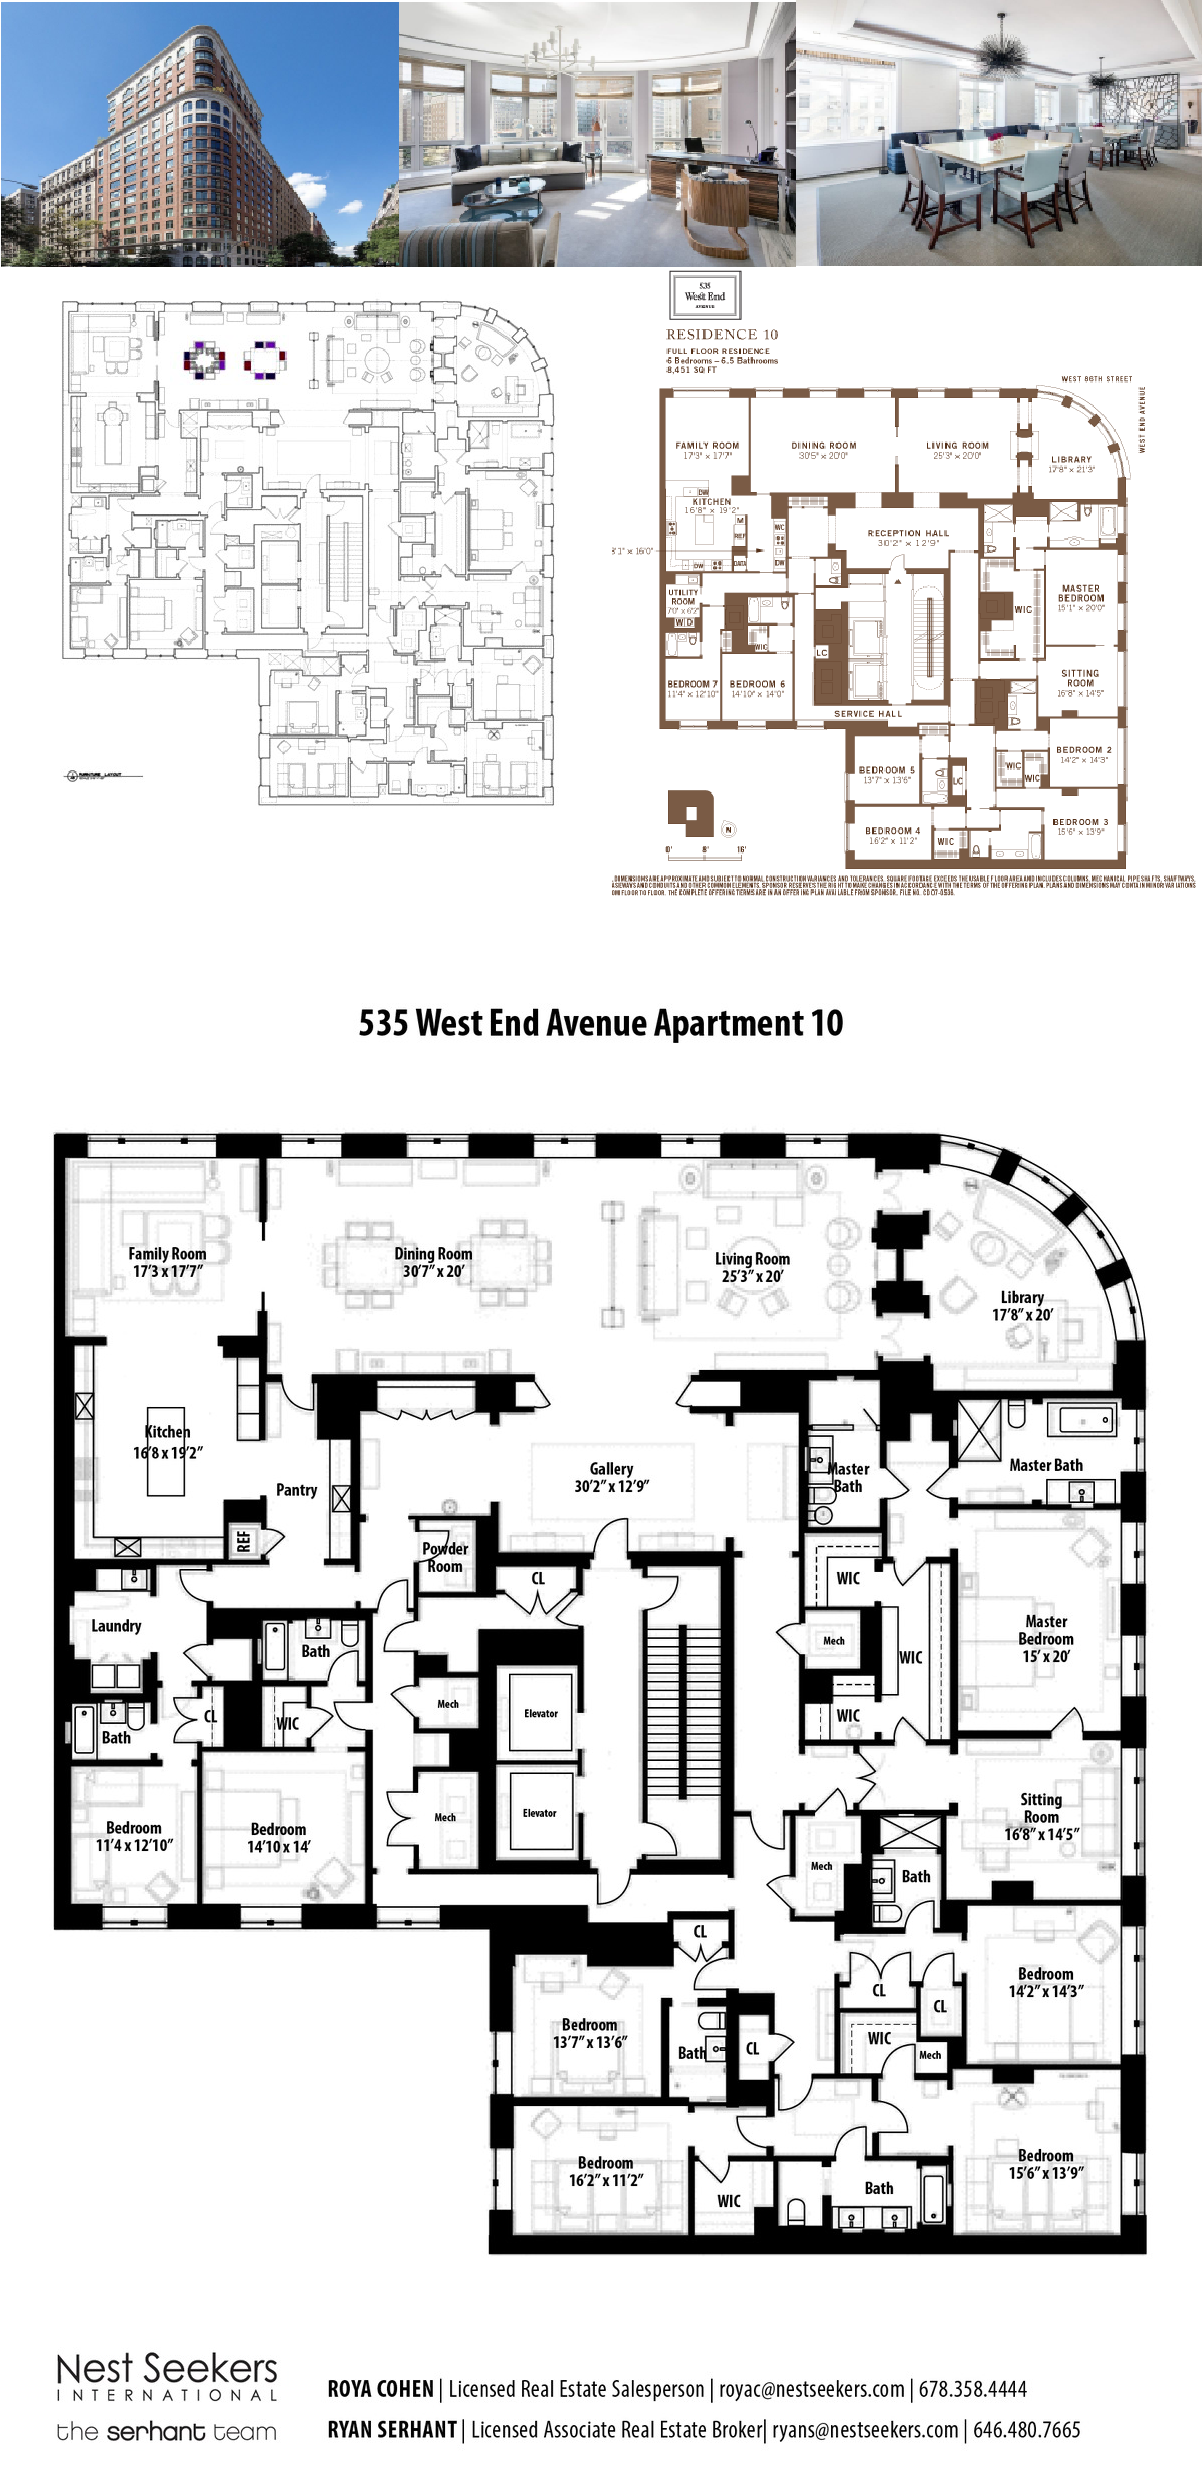 For Sale 535 West End Ave 10th Floor In Upper West Side Mansion Floor Plan Luxury Floor Plans Floor Plans